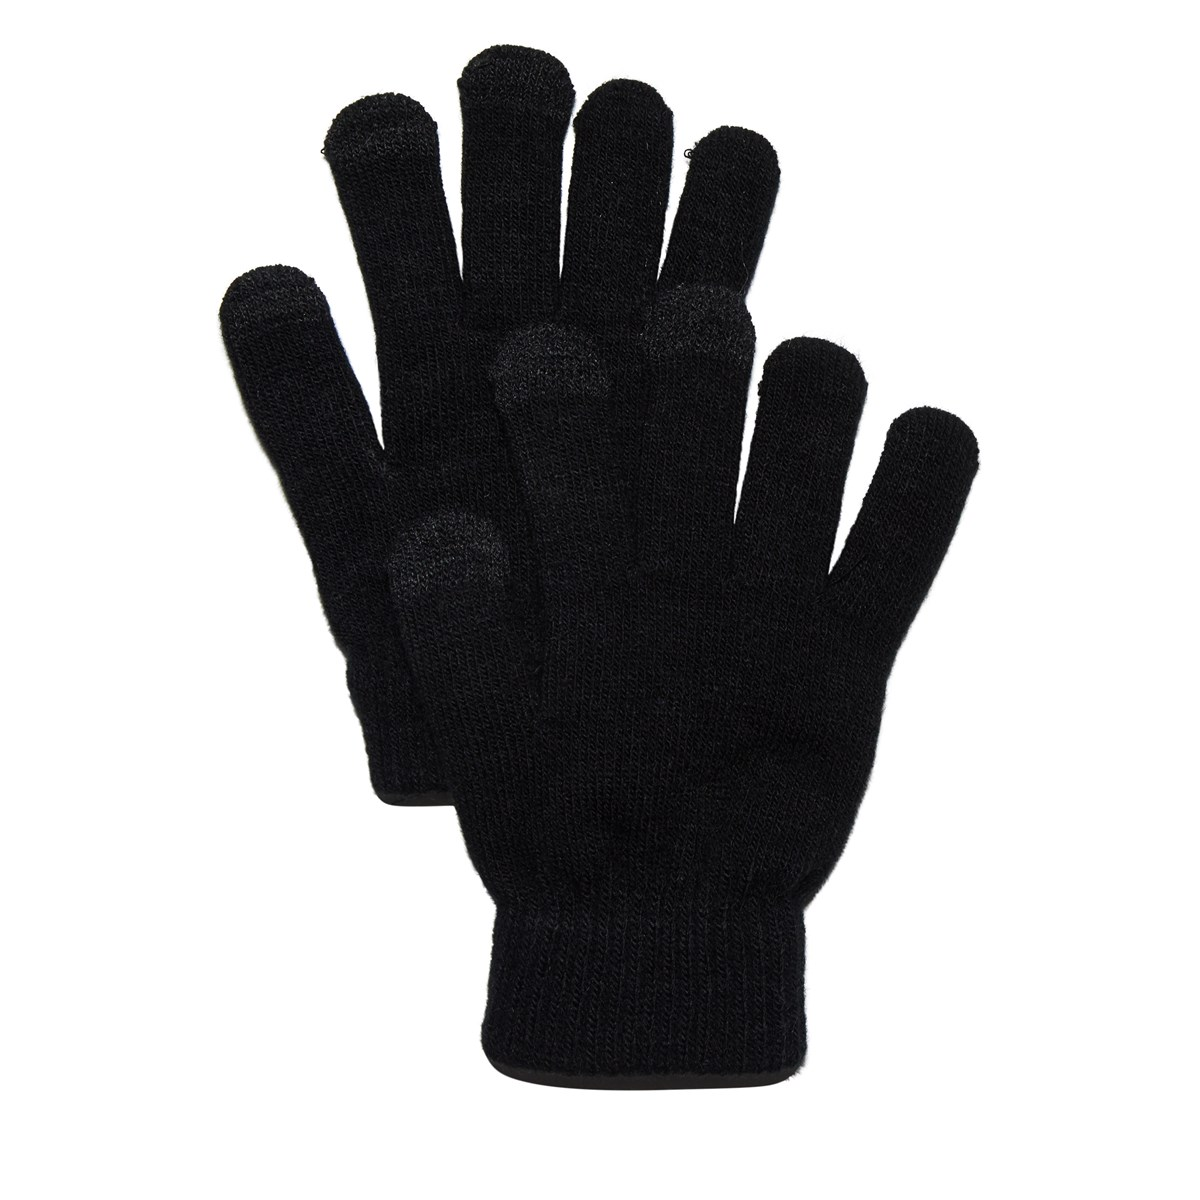 Aly Magic Gloves in Black